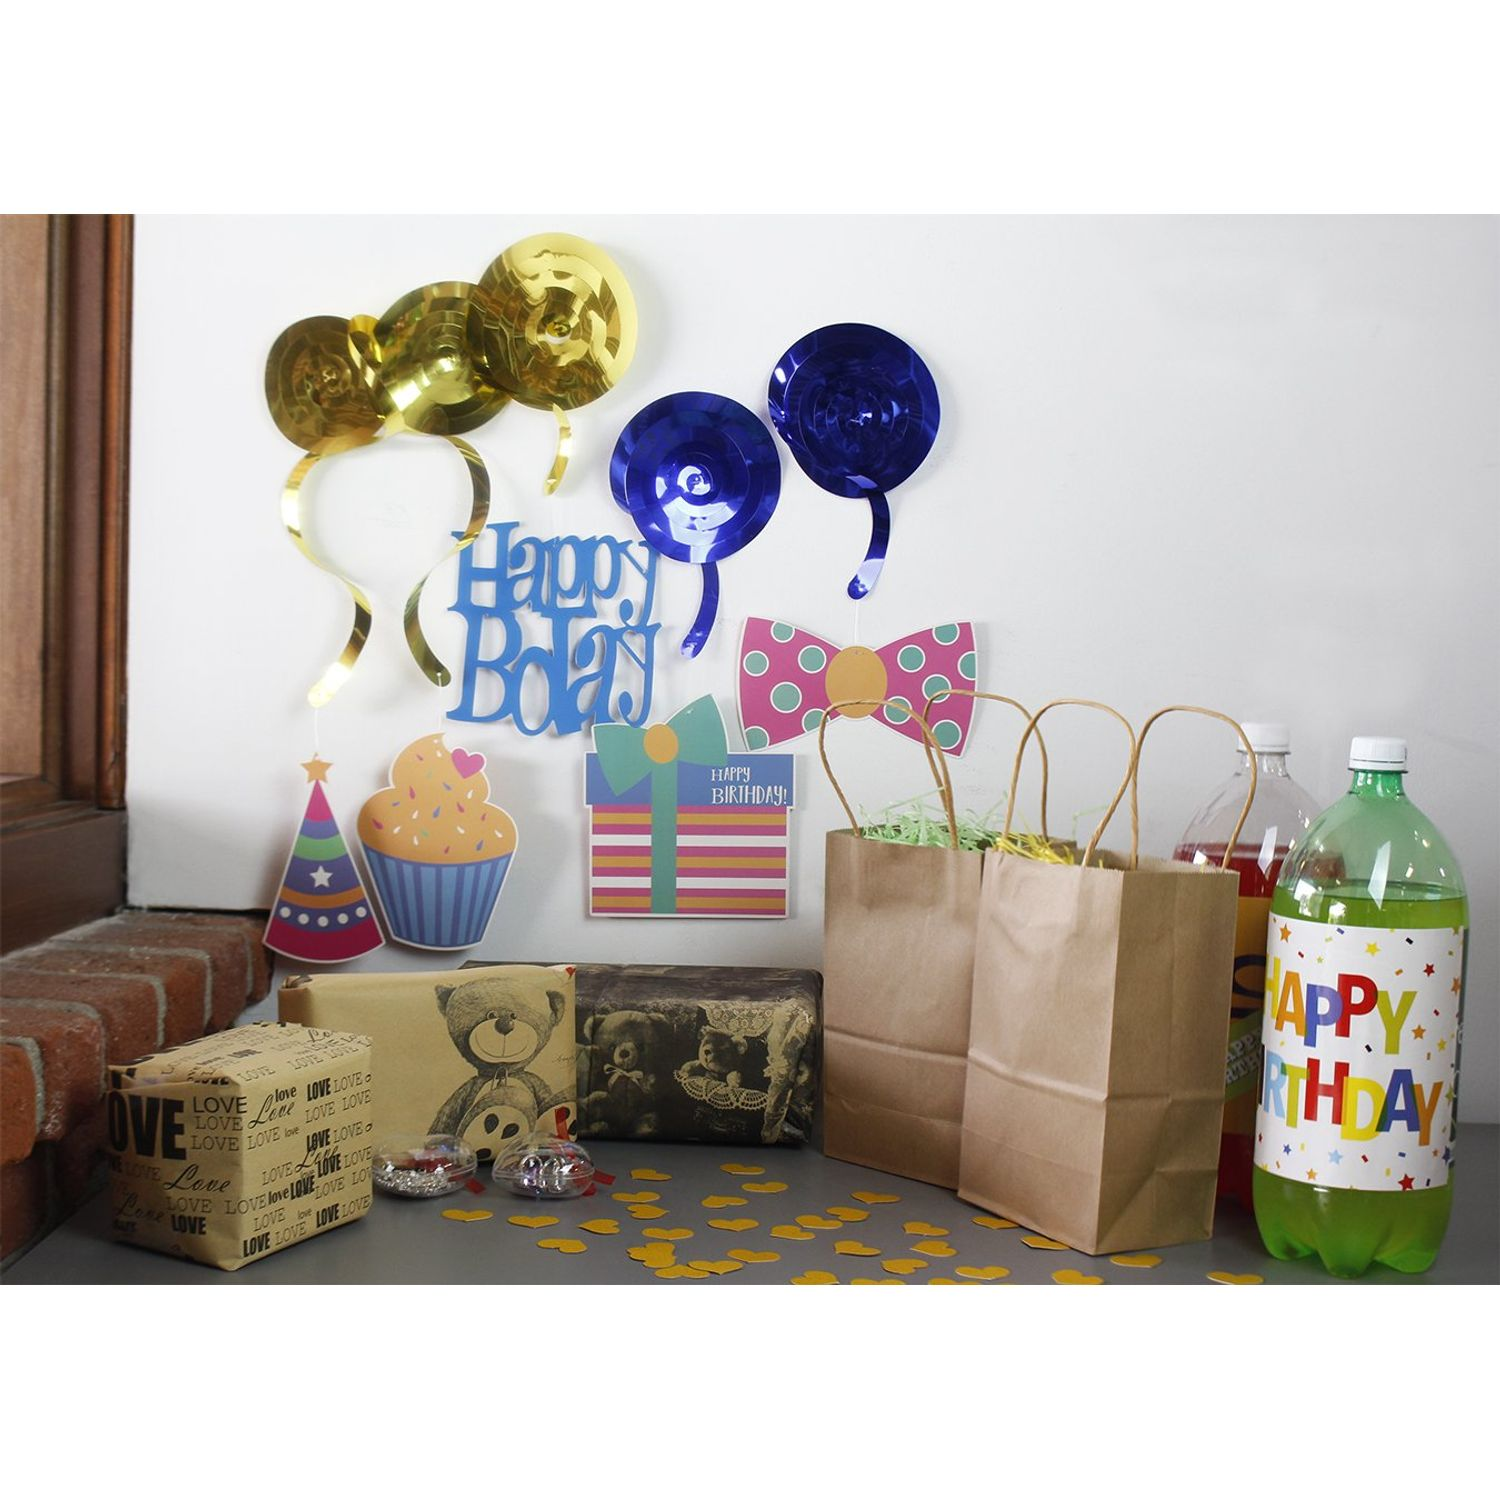 Hanging Swirl Streamers Kids and Adults Balloons and Ribbons 66-Piece Rainbow Birthday Party Supplies for Girls Boys Collect Present Happy Birthday Decorations Kit with Colorful Banner